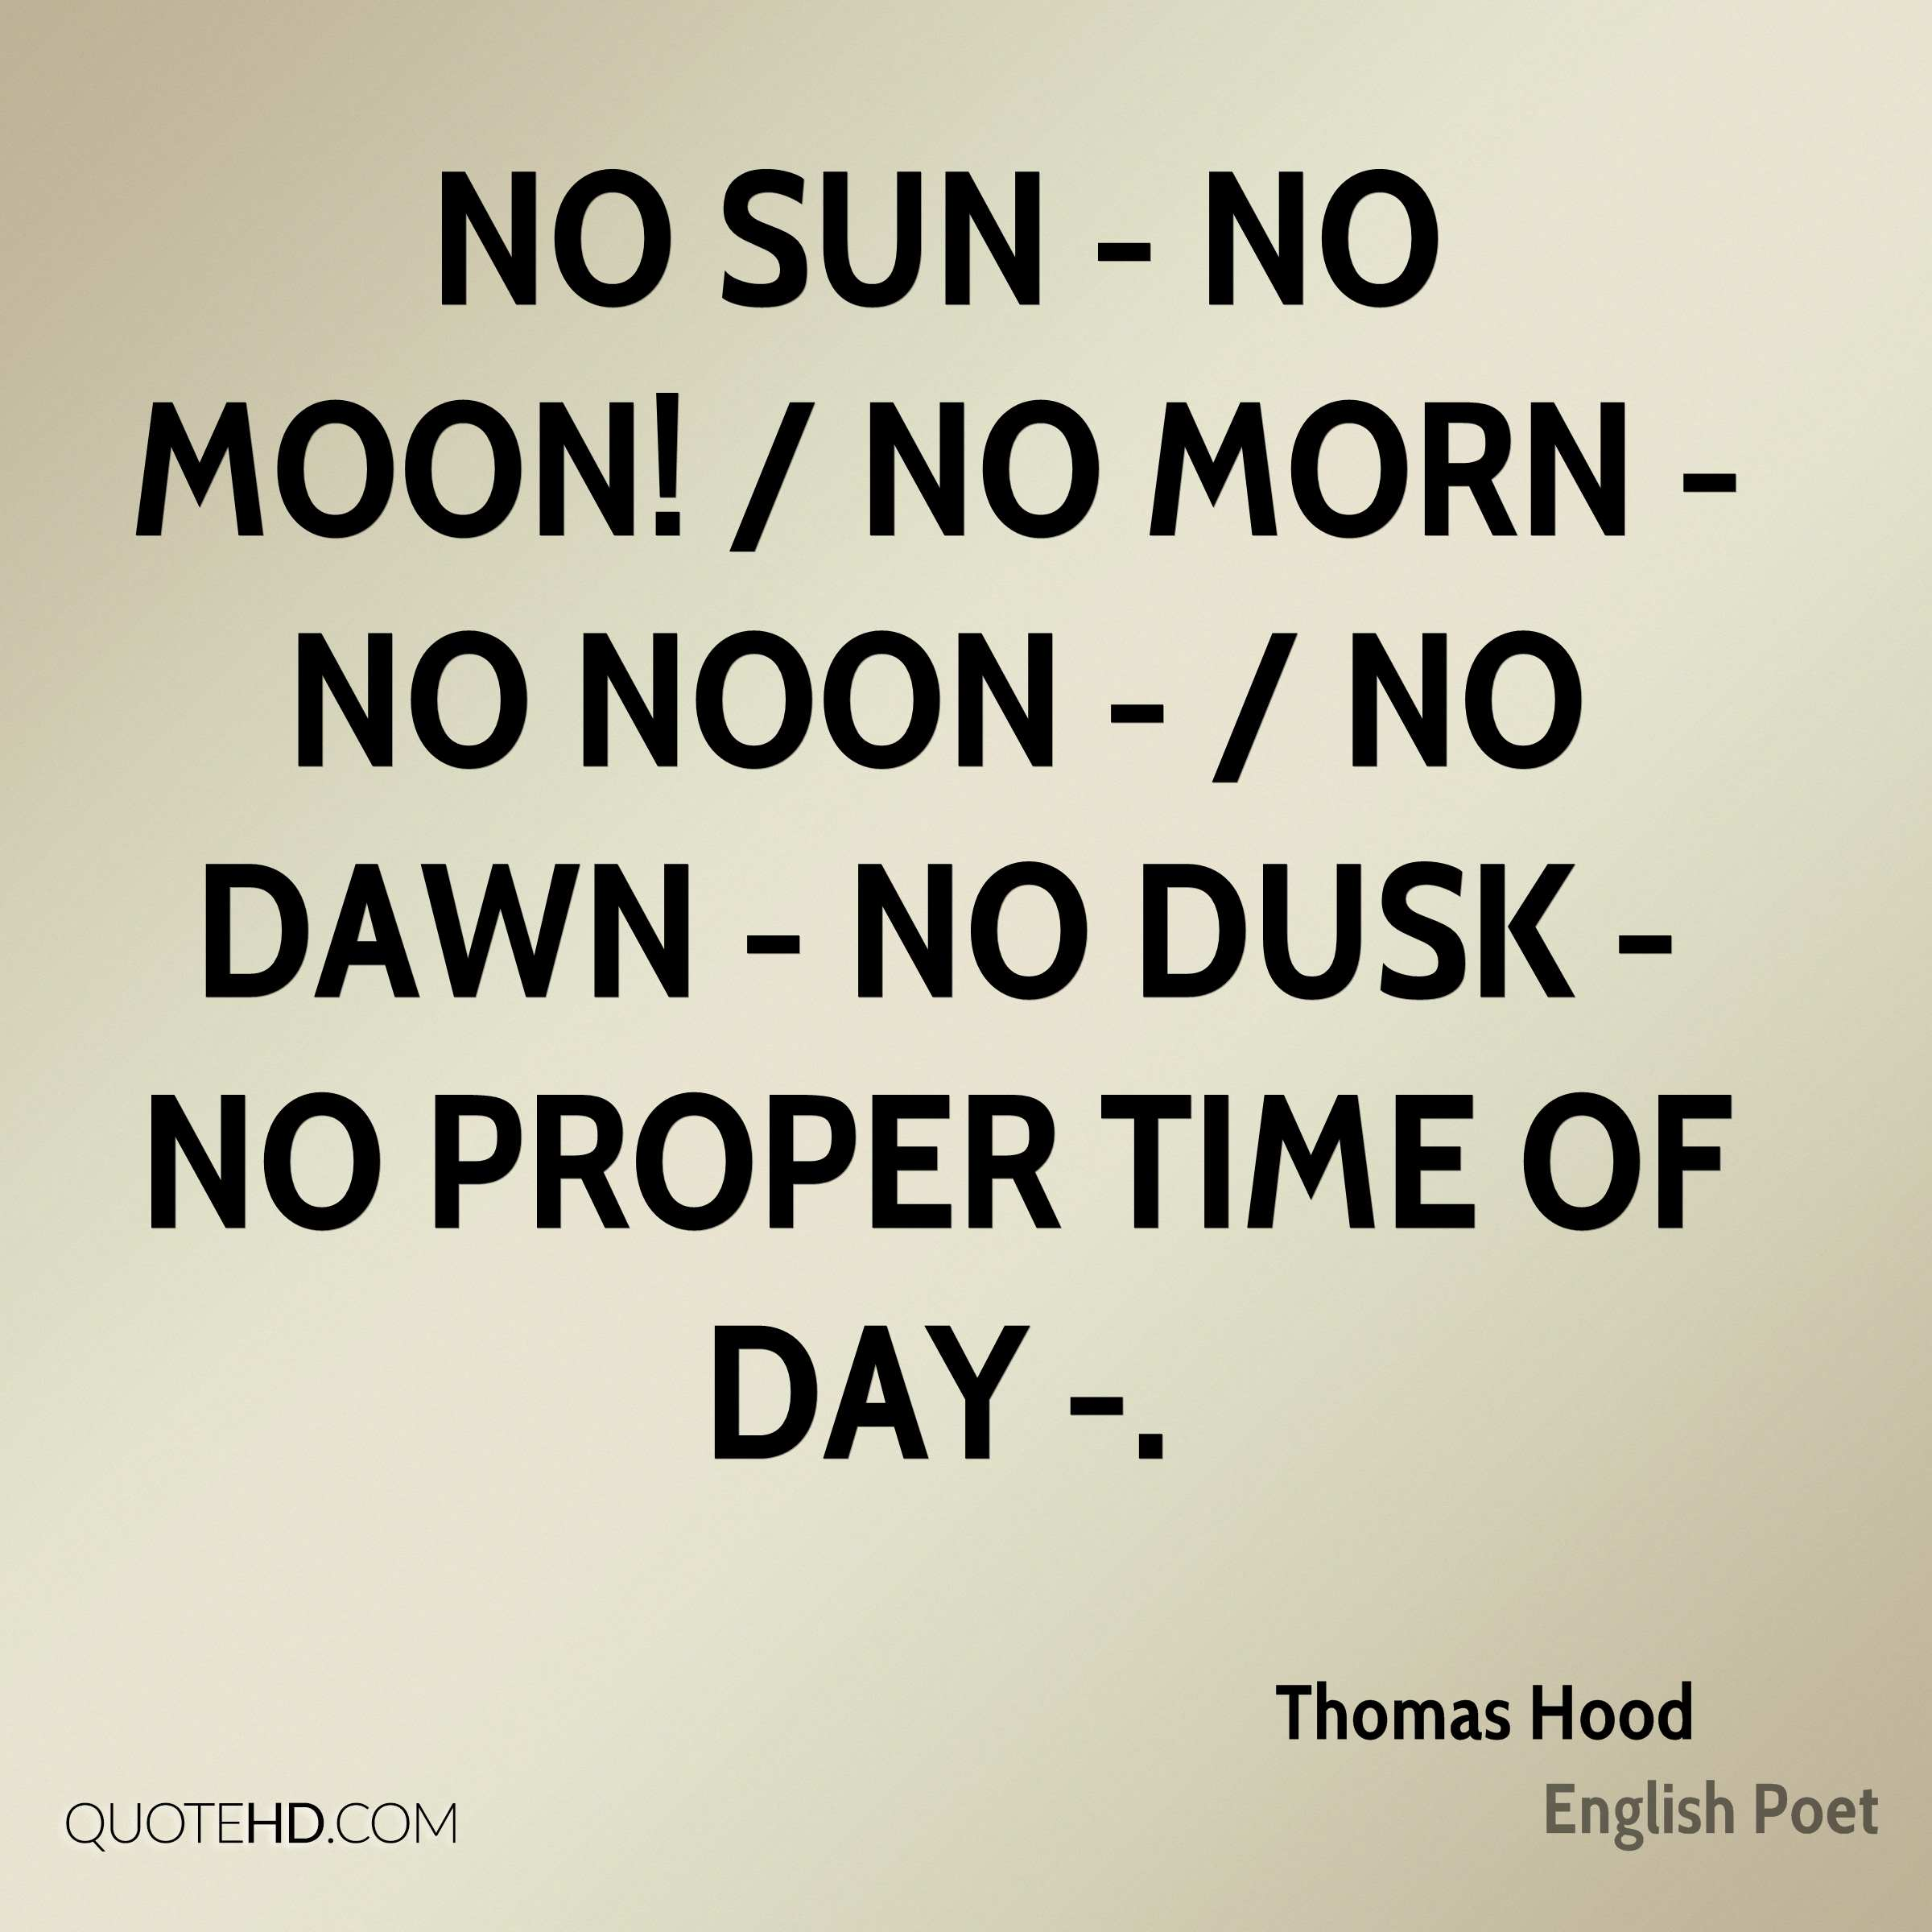 Life In The Hood Quotes Images: Thomas Hood Quotes